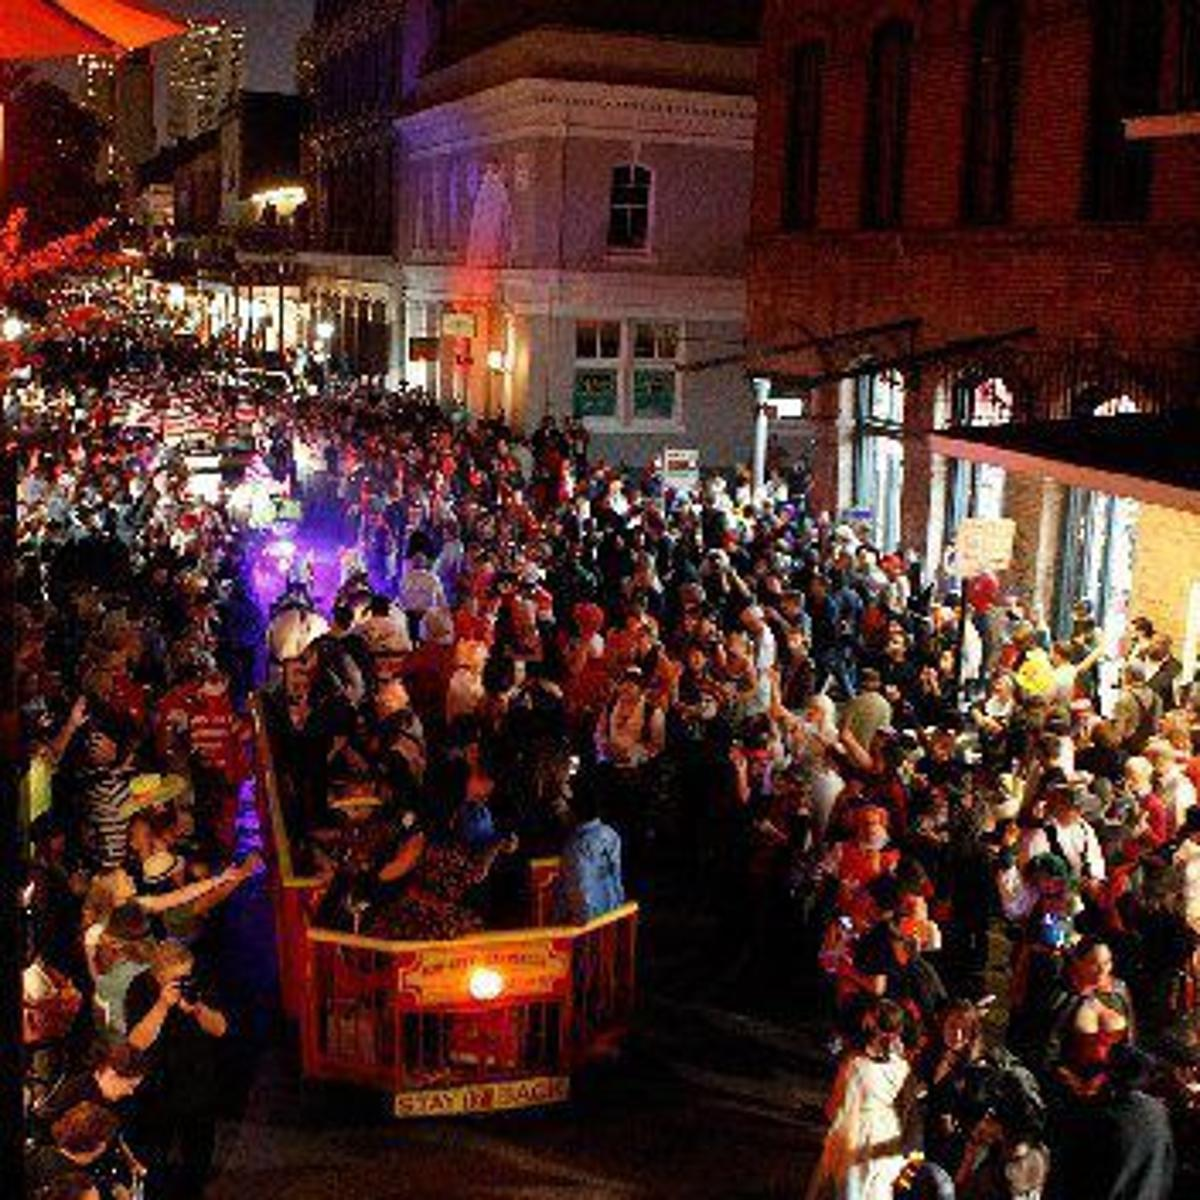 Halloween In New Orleans Events 2020 Things to do around New Orleans: Monaghan's Halloween parade